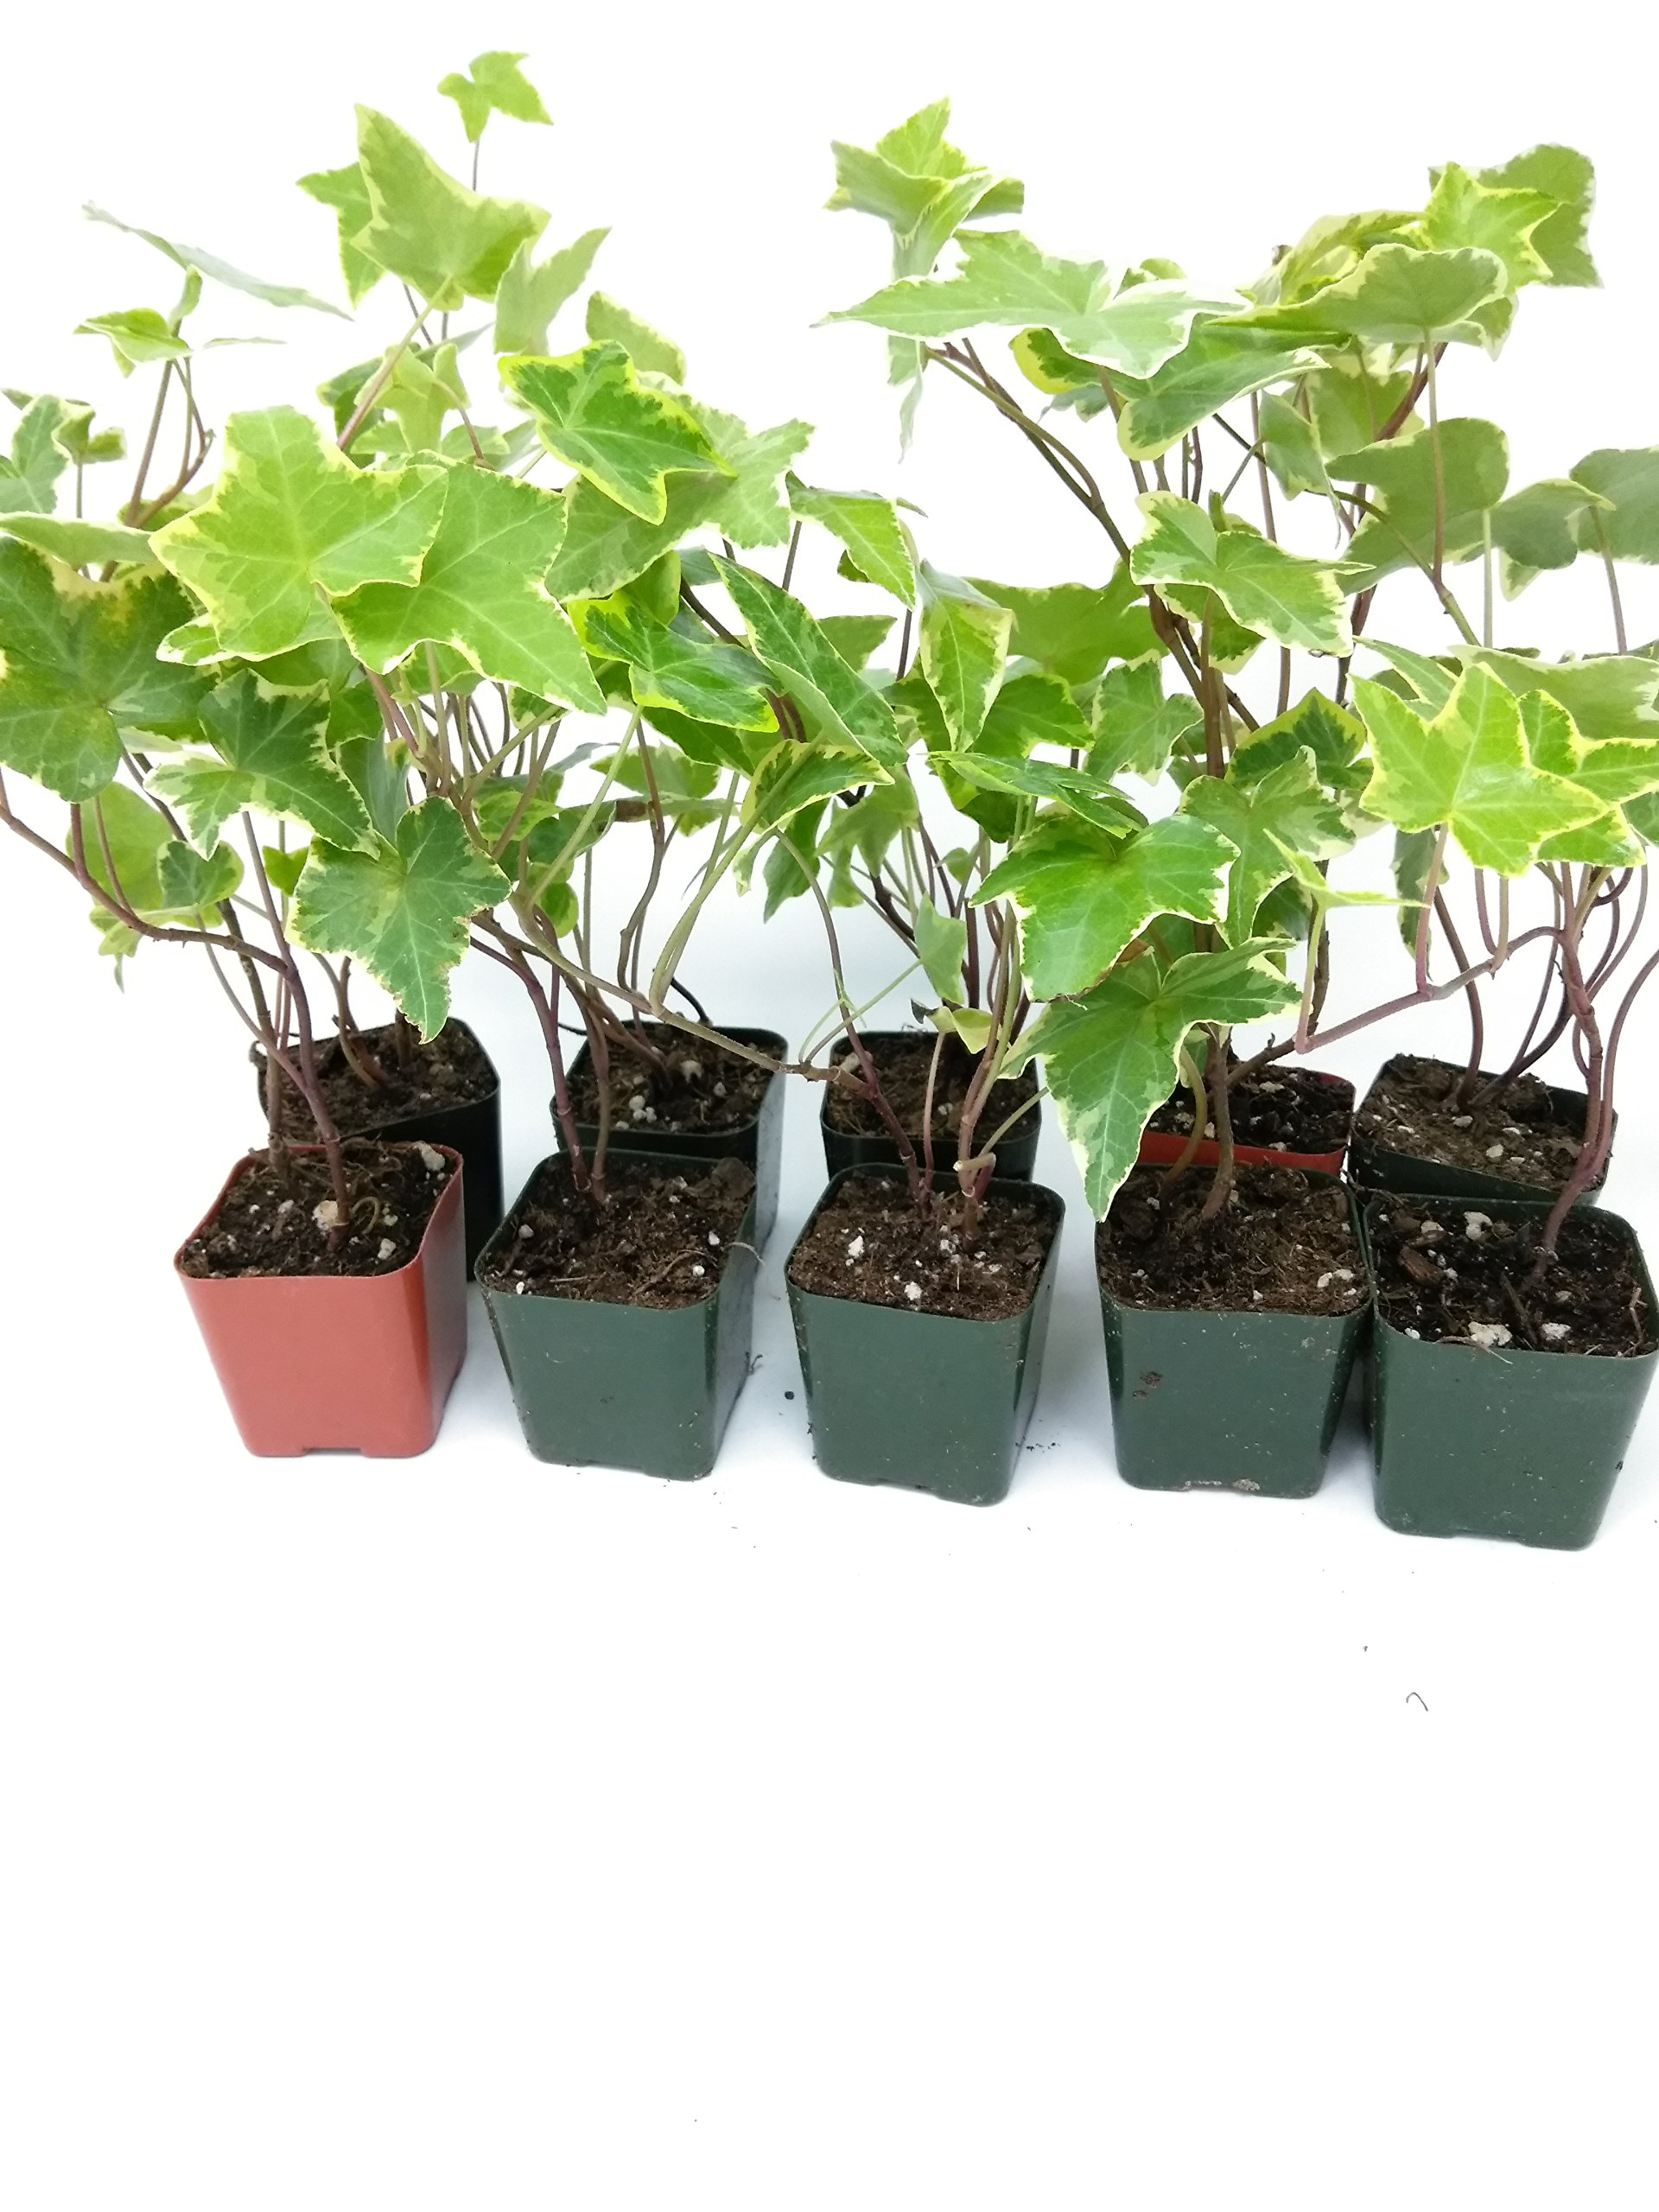 Jmbamboo - English Ivy Hedera Helix Air Purification Plant - Groundcover - 2 1/4'' Pot by Jmbamboov (Image #3)